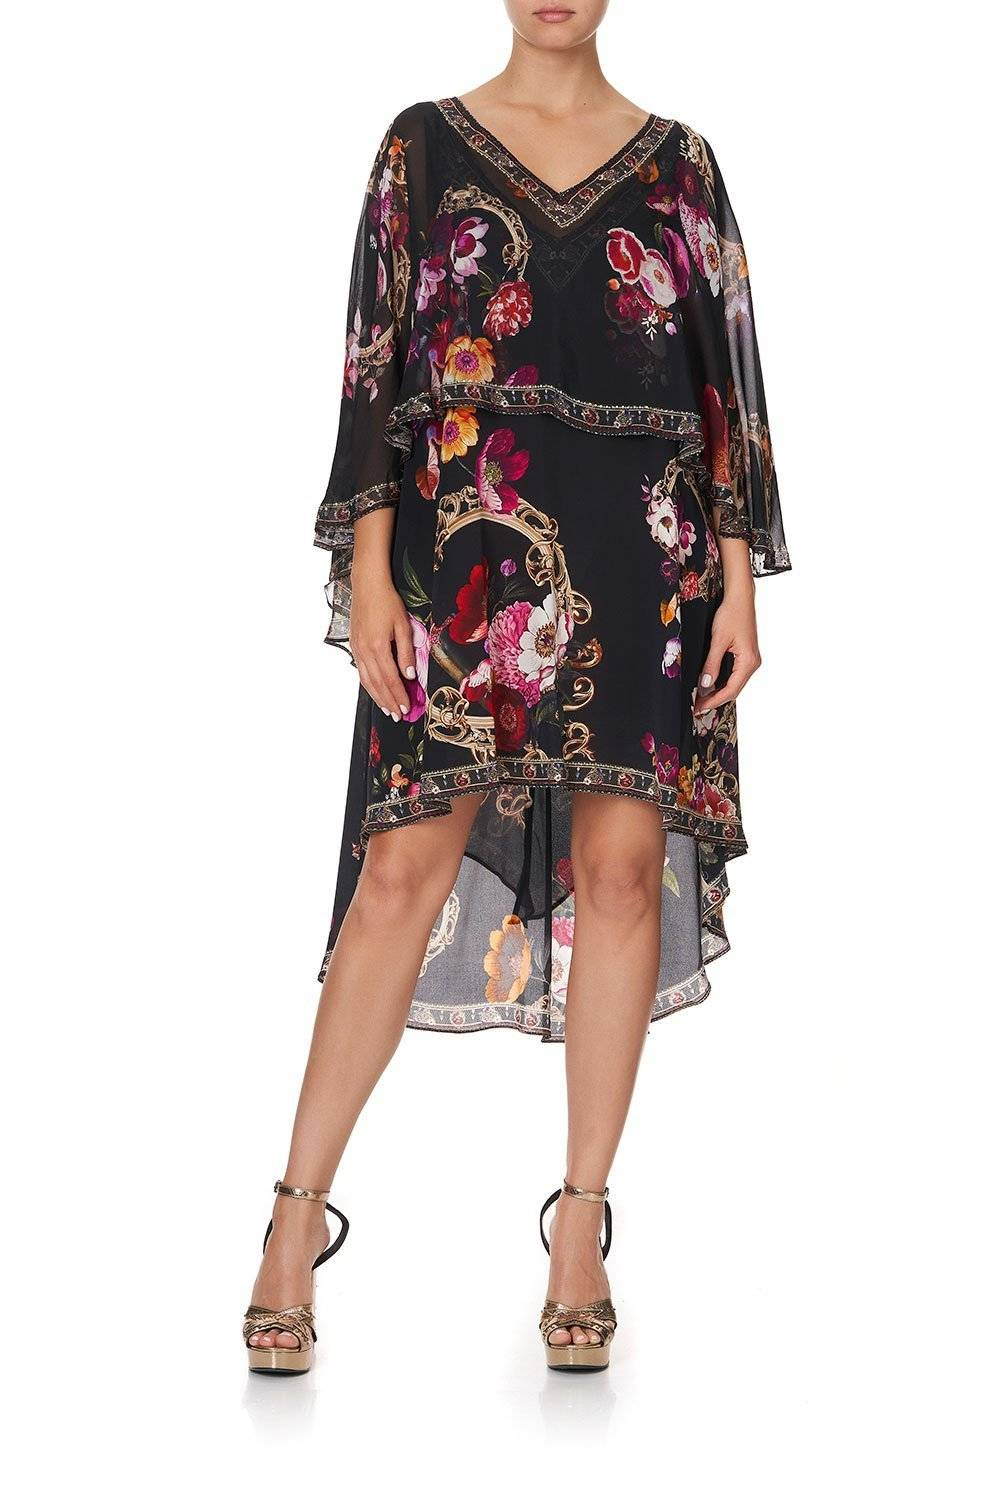 CAMILLA BLACK AND PINK FLORAL DRESS